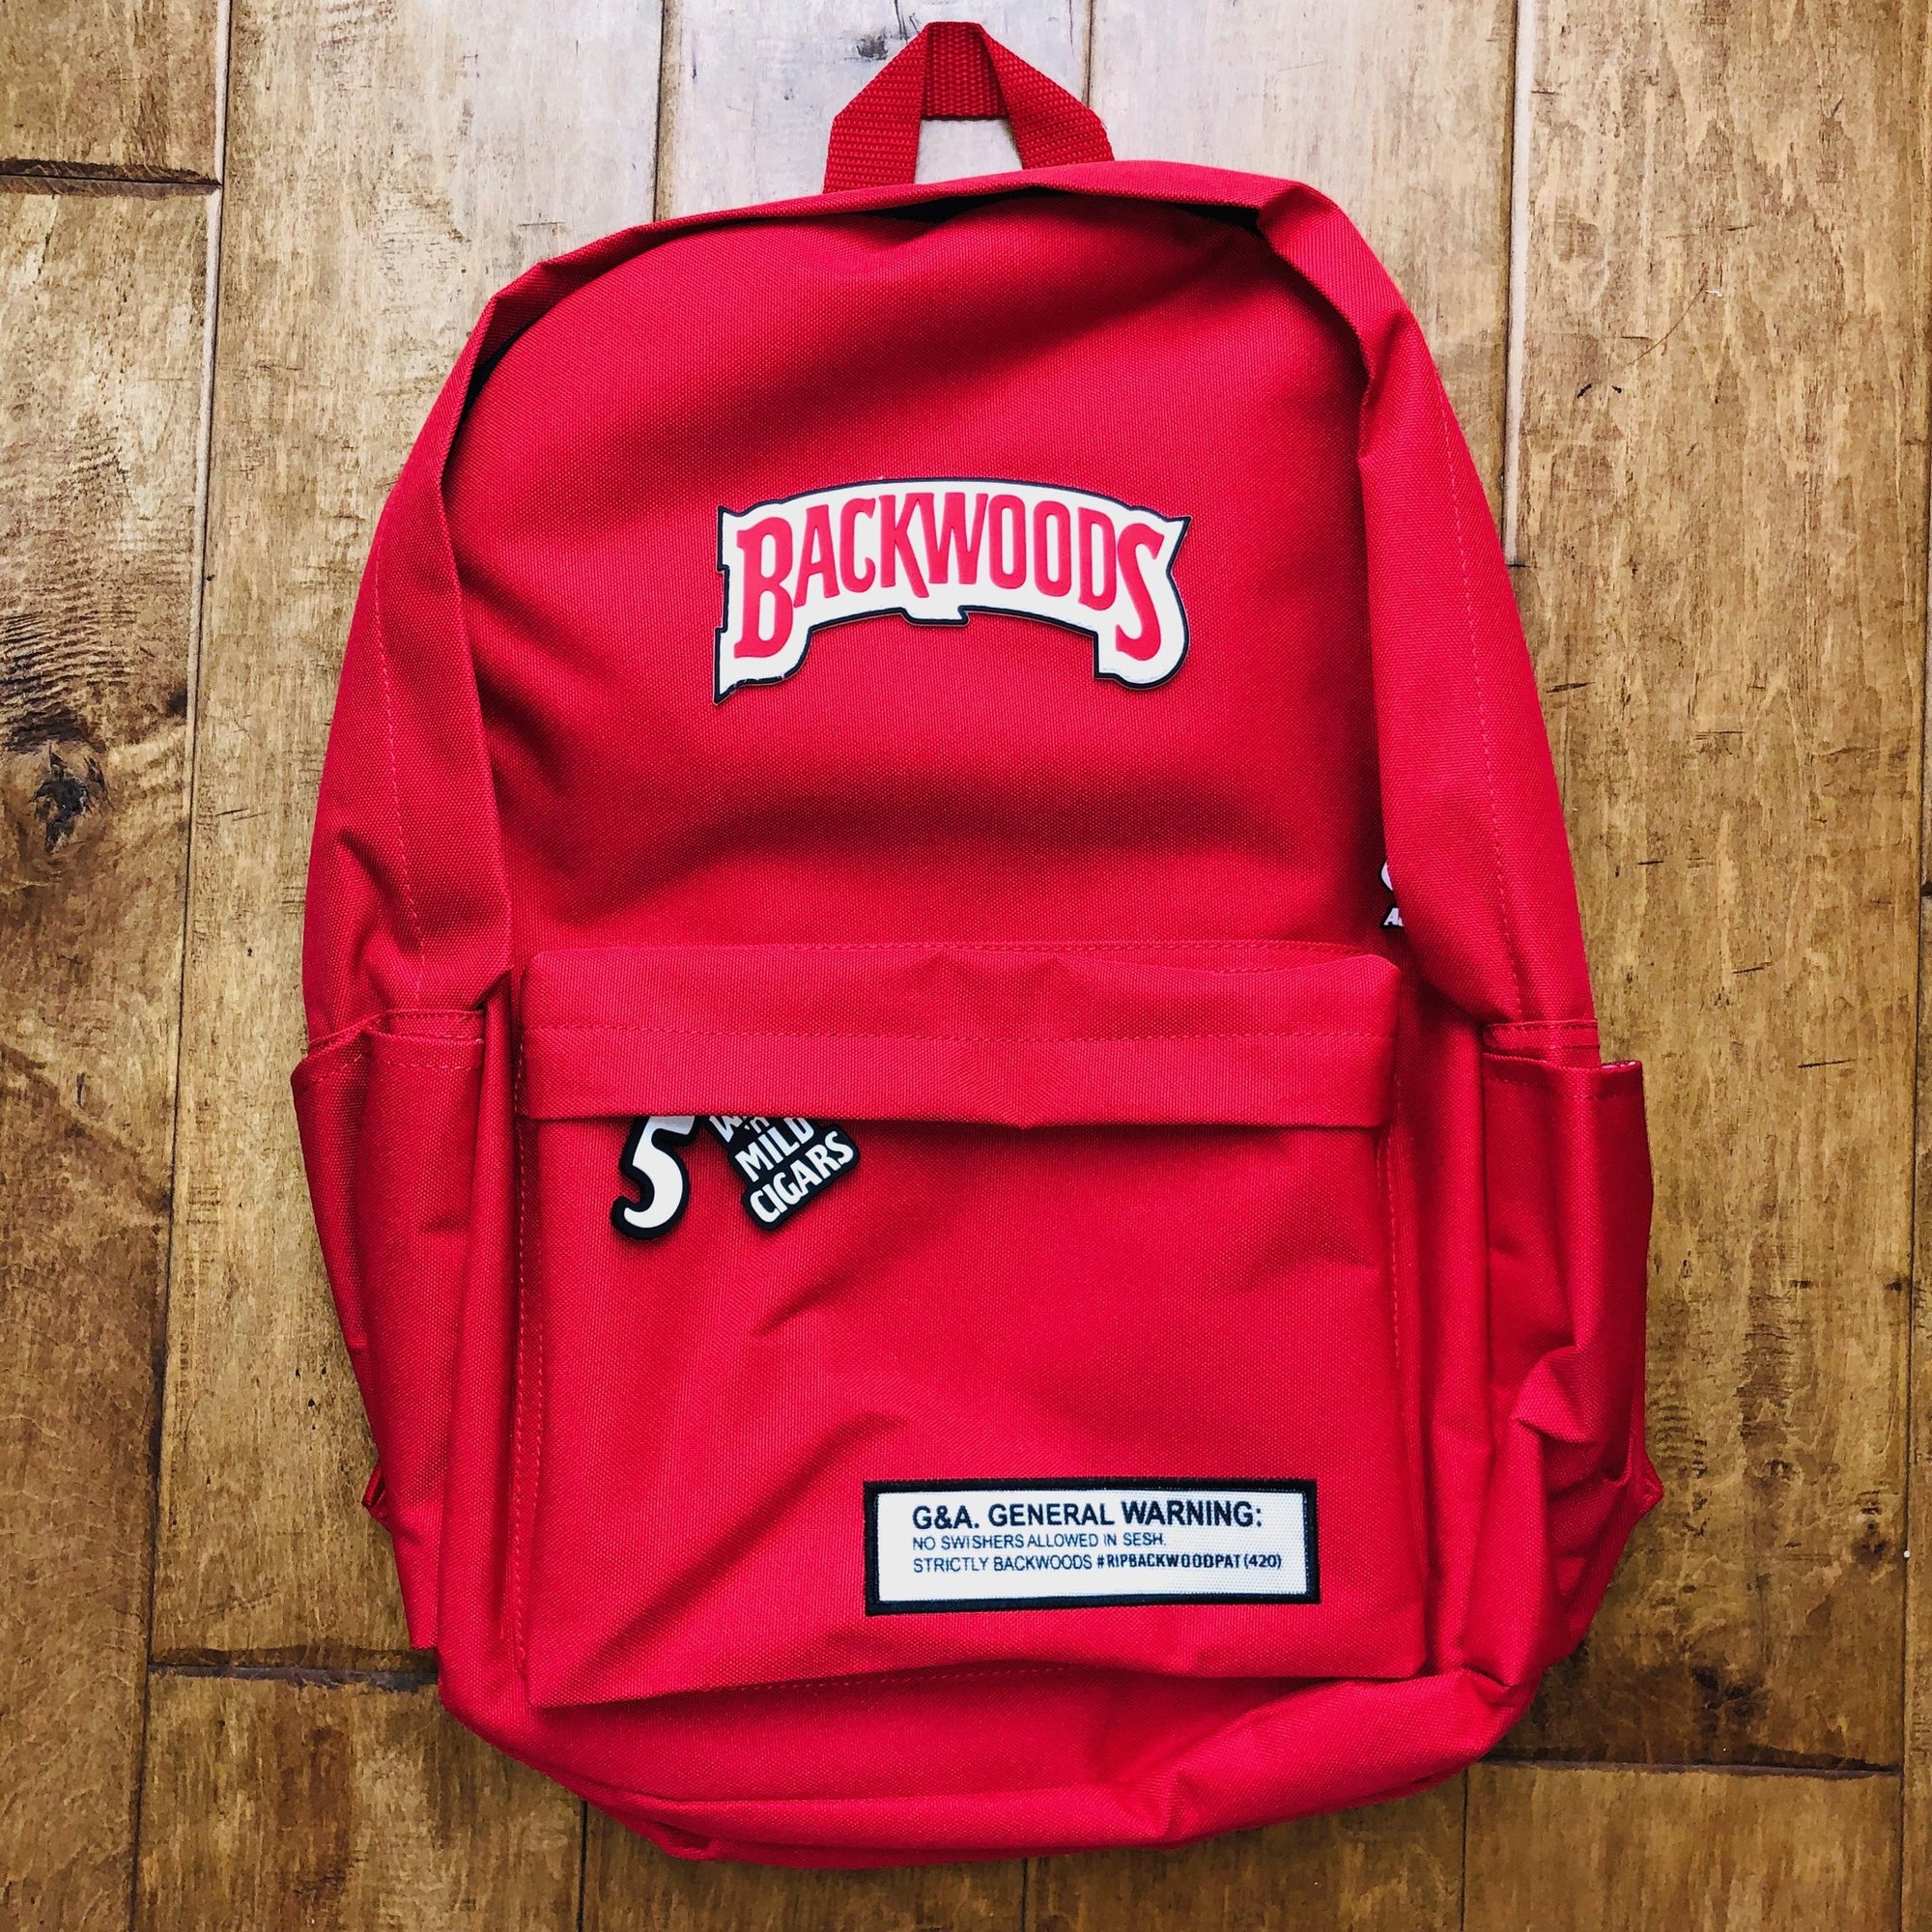 Red Backwoods Backpack